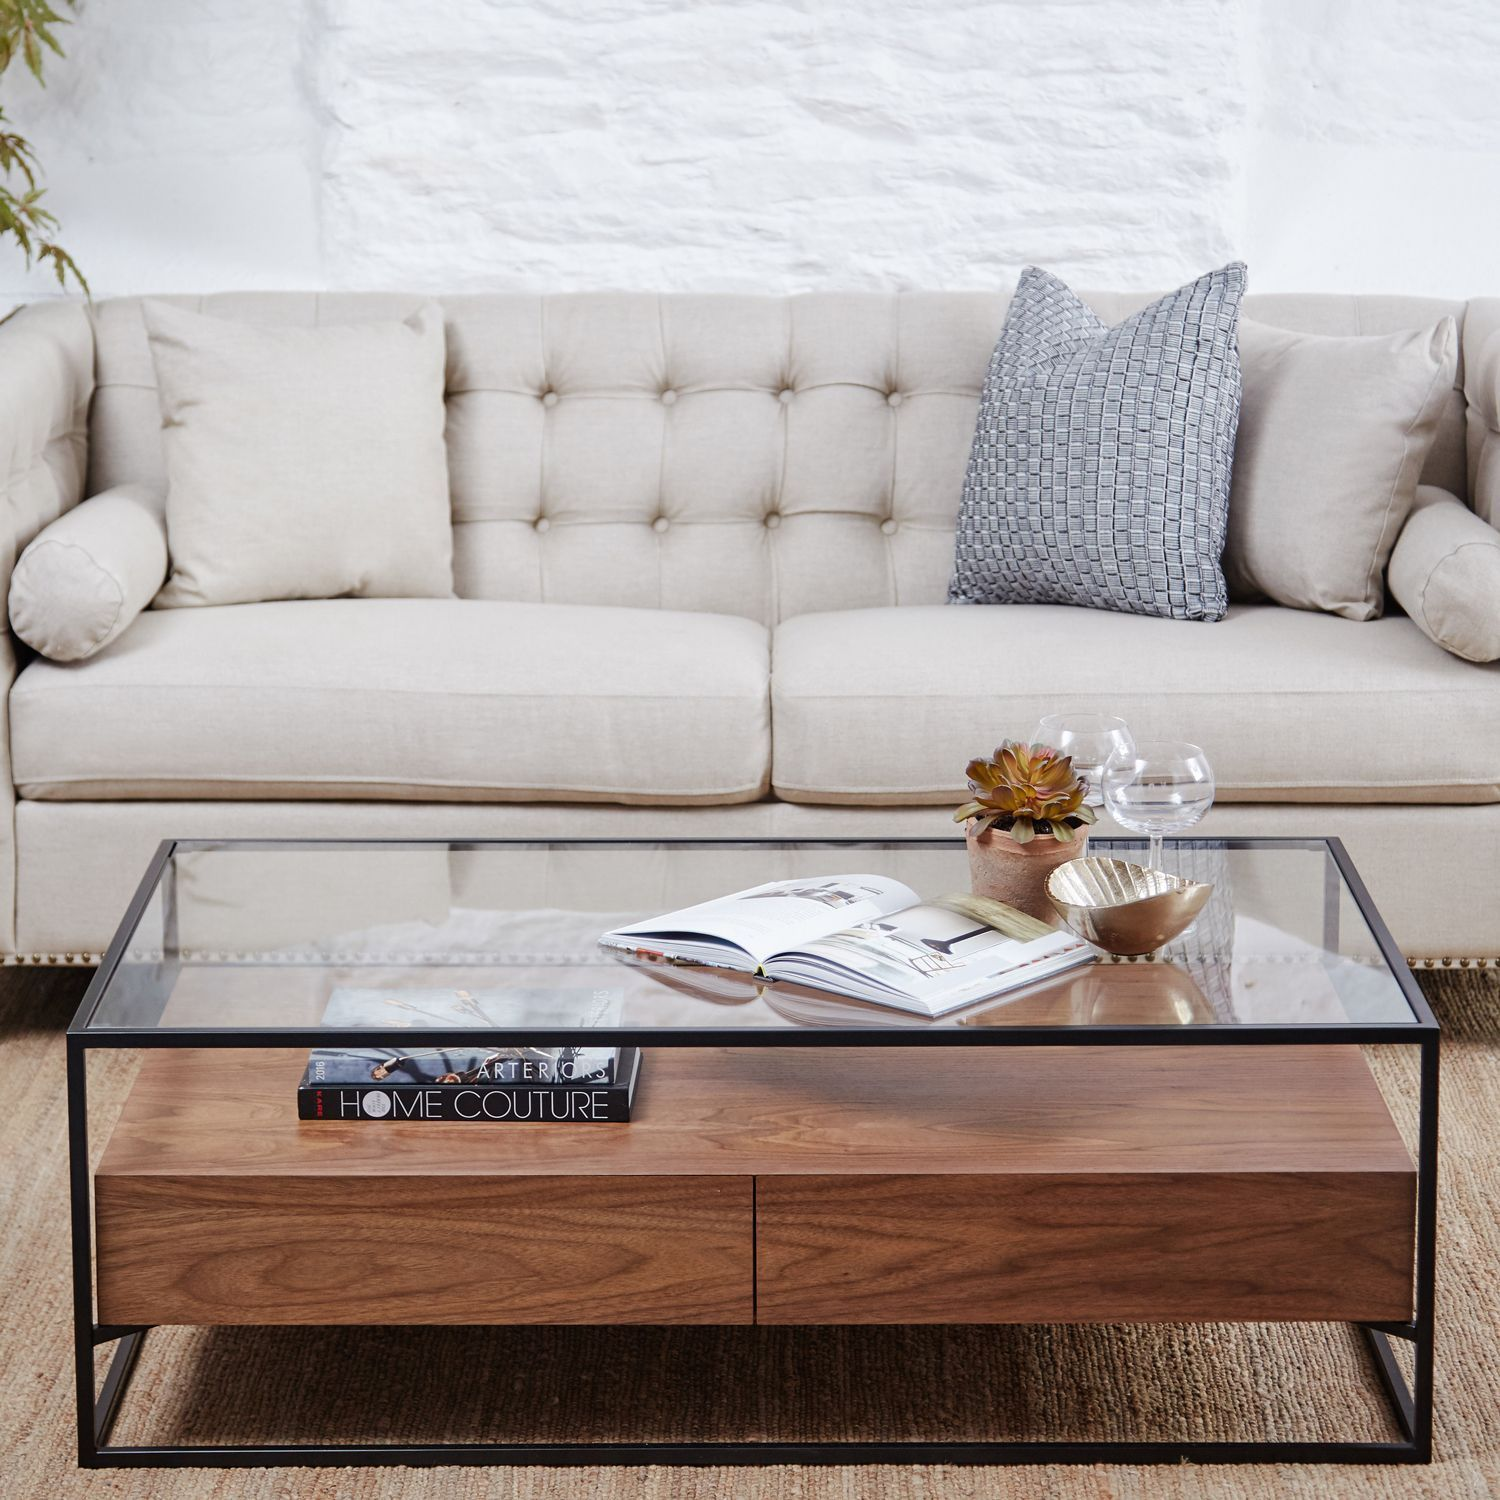 Table Inspirations For Your Next Interior Design Project Check More Mid Century Pieces At Http Essent Center Table Living Room Furniture Design Coffee Table Living room glass table